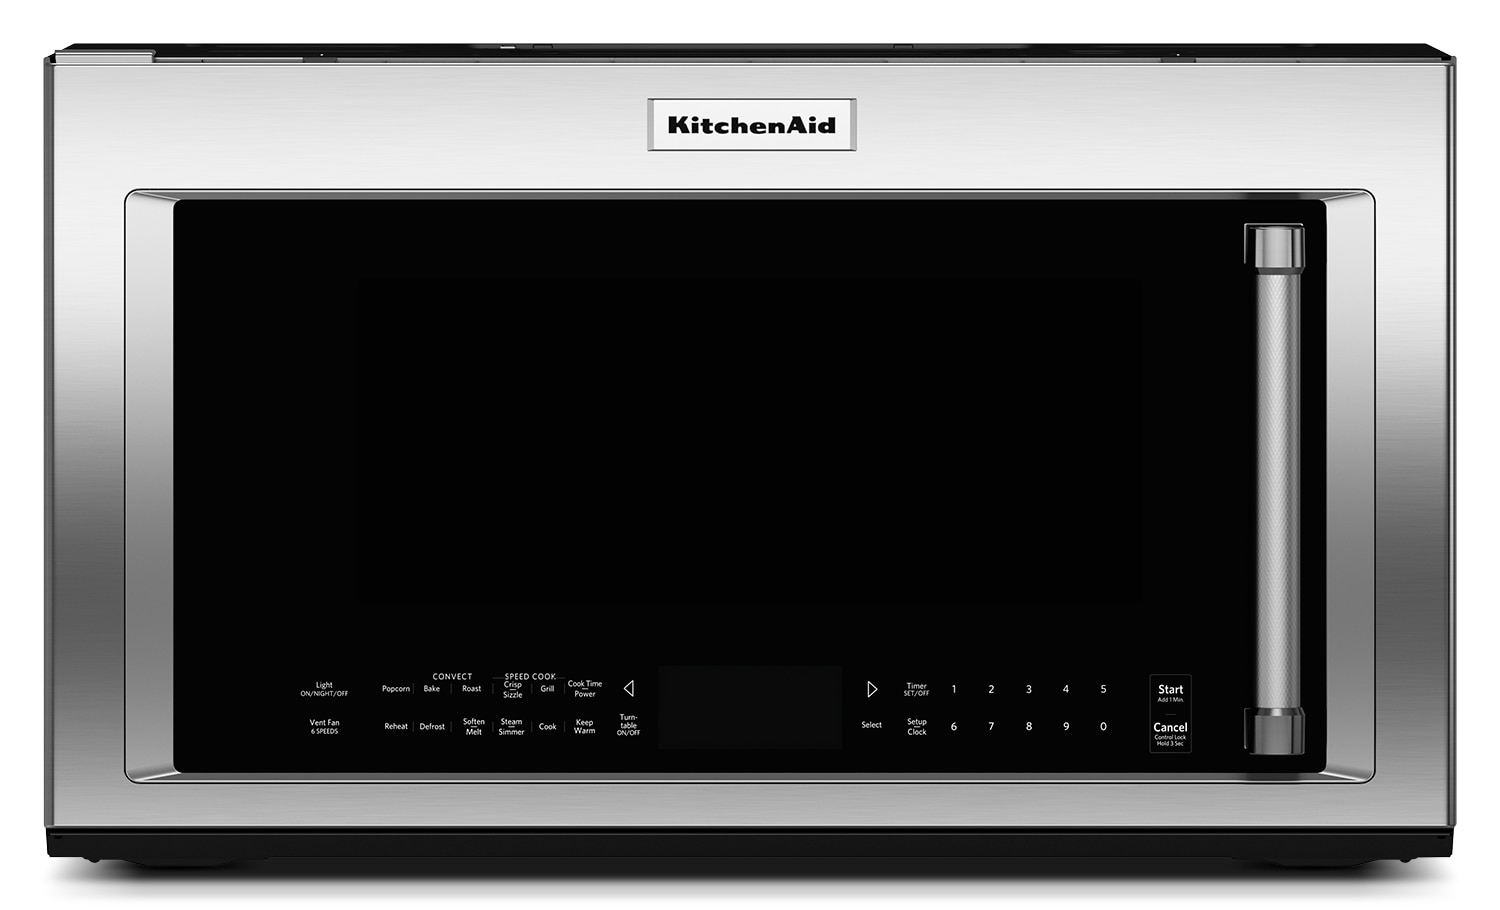 Cooking Products - KitchenAid Stainless Steel Microwave (1.9 Cu. Ft.) - YKMHP519ES